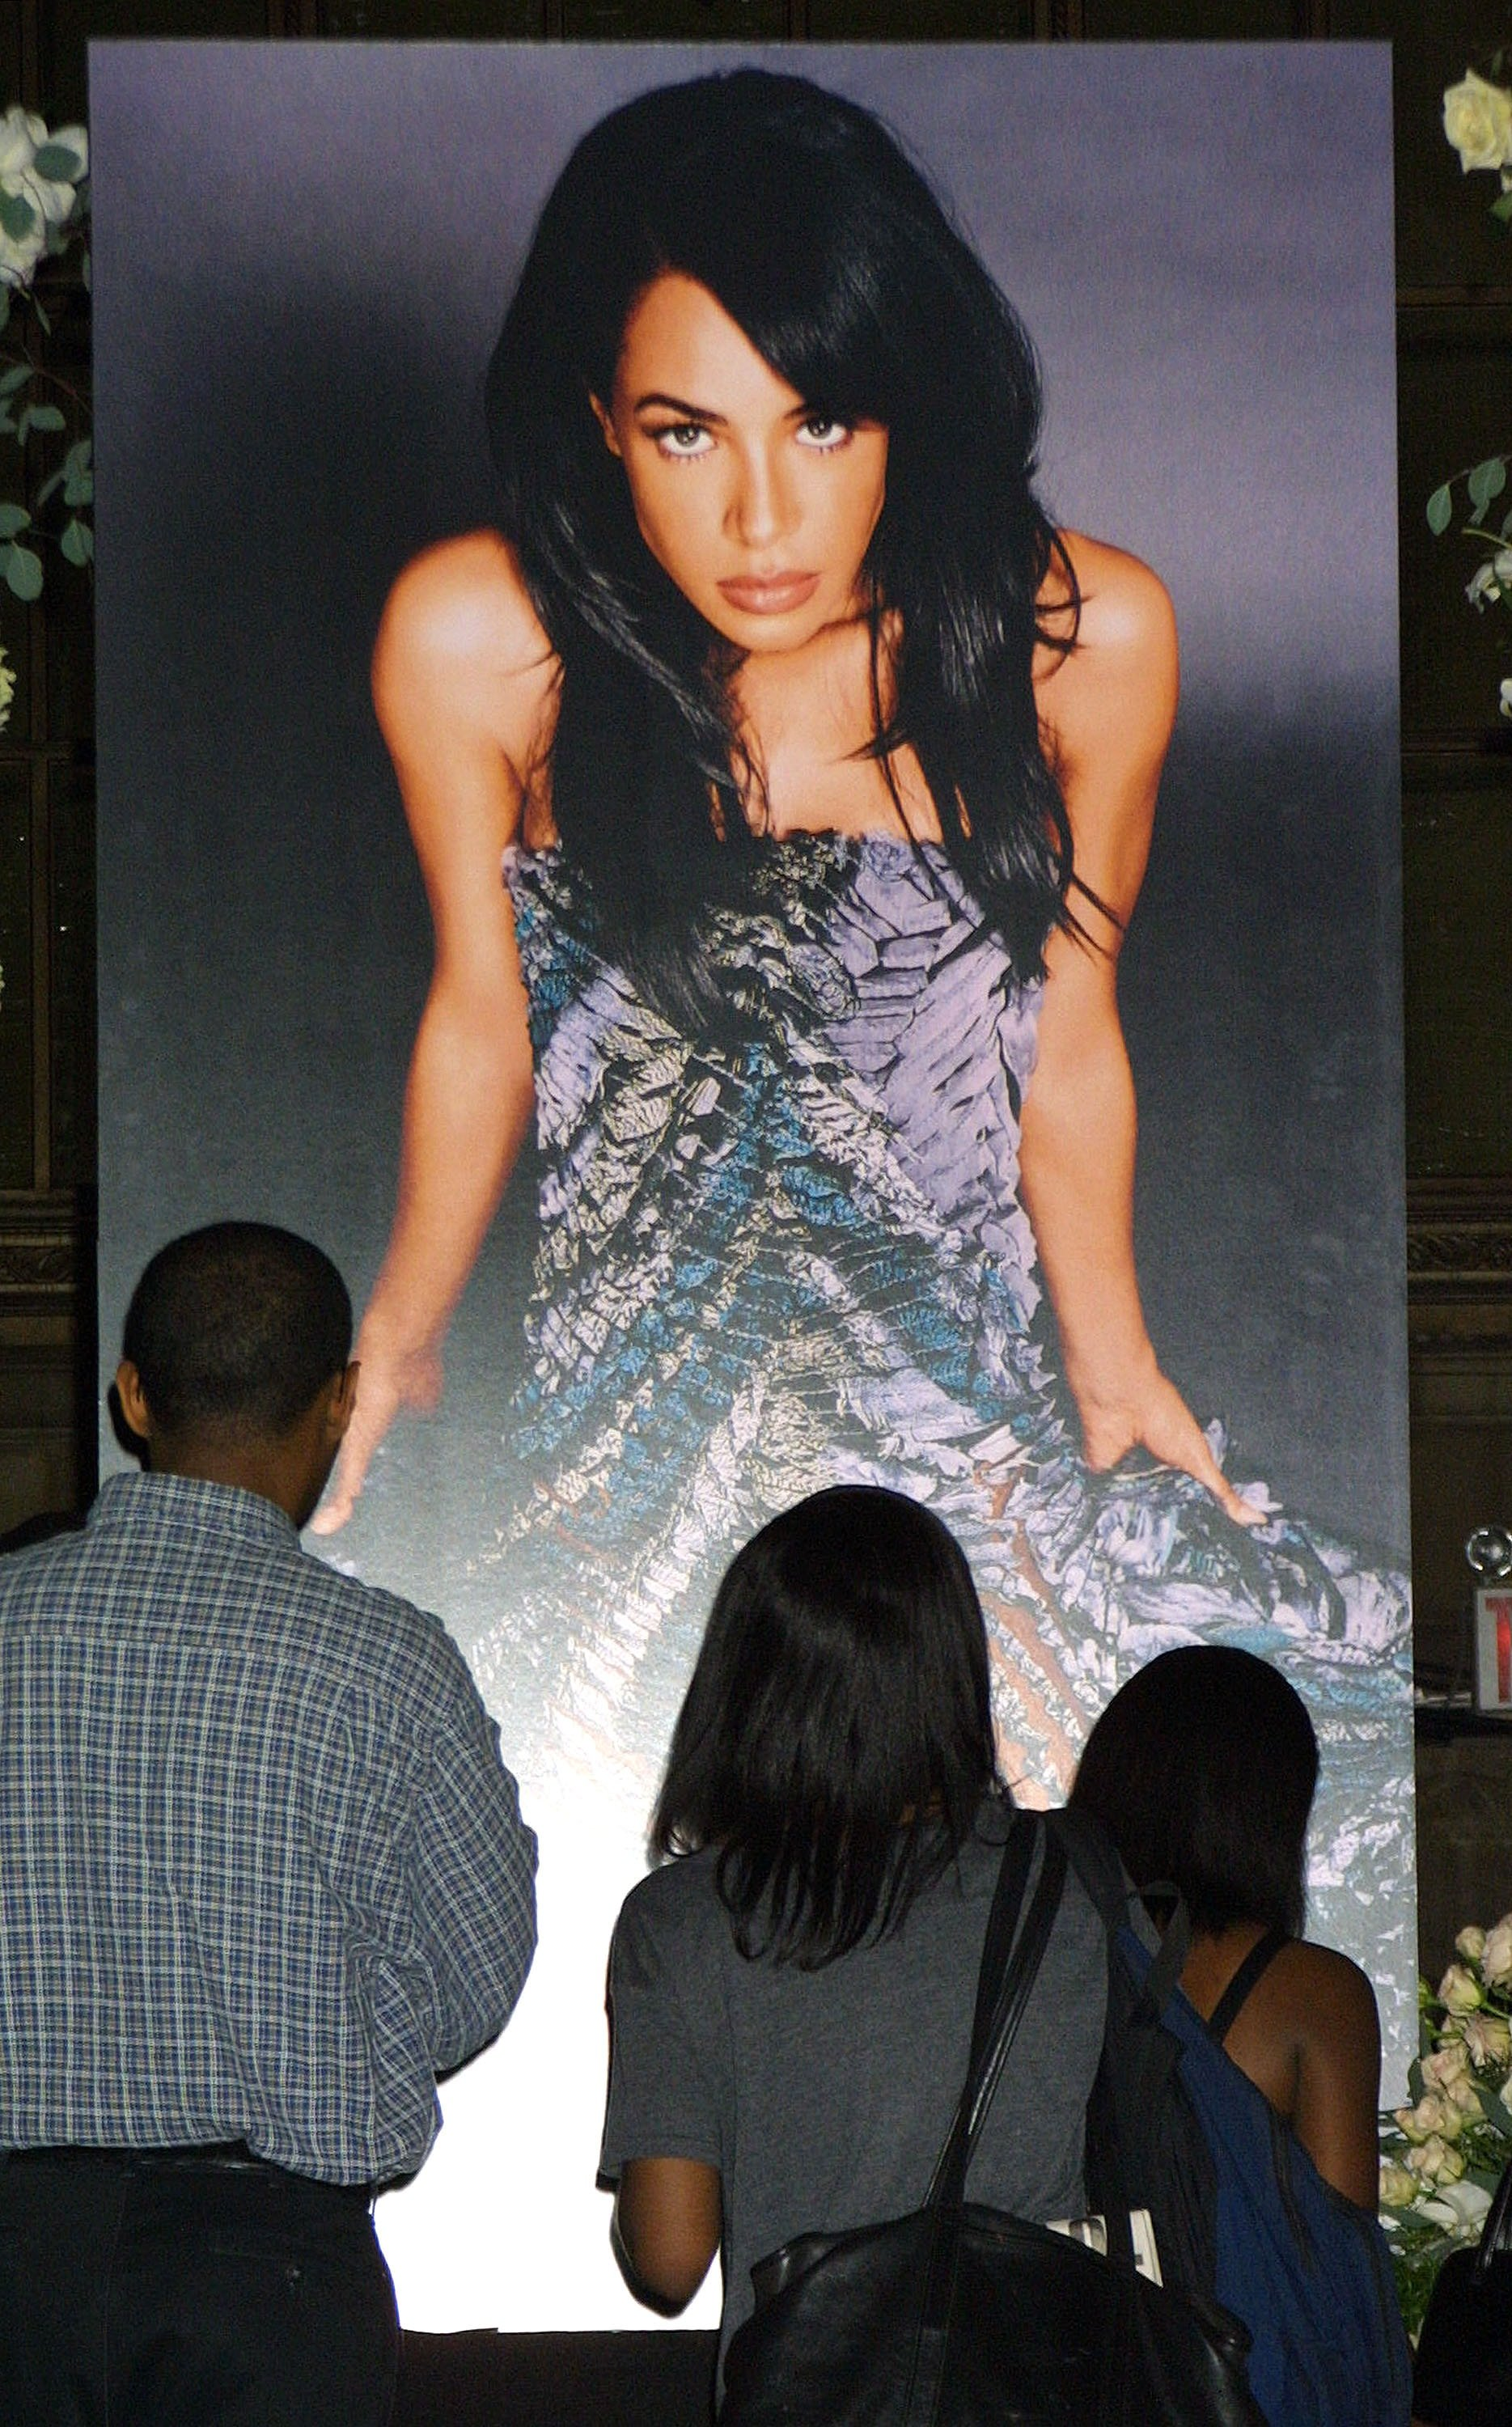 Funeral For Late R B Singer Aaliyah